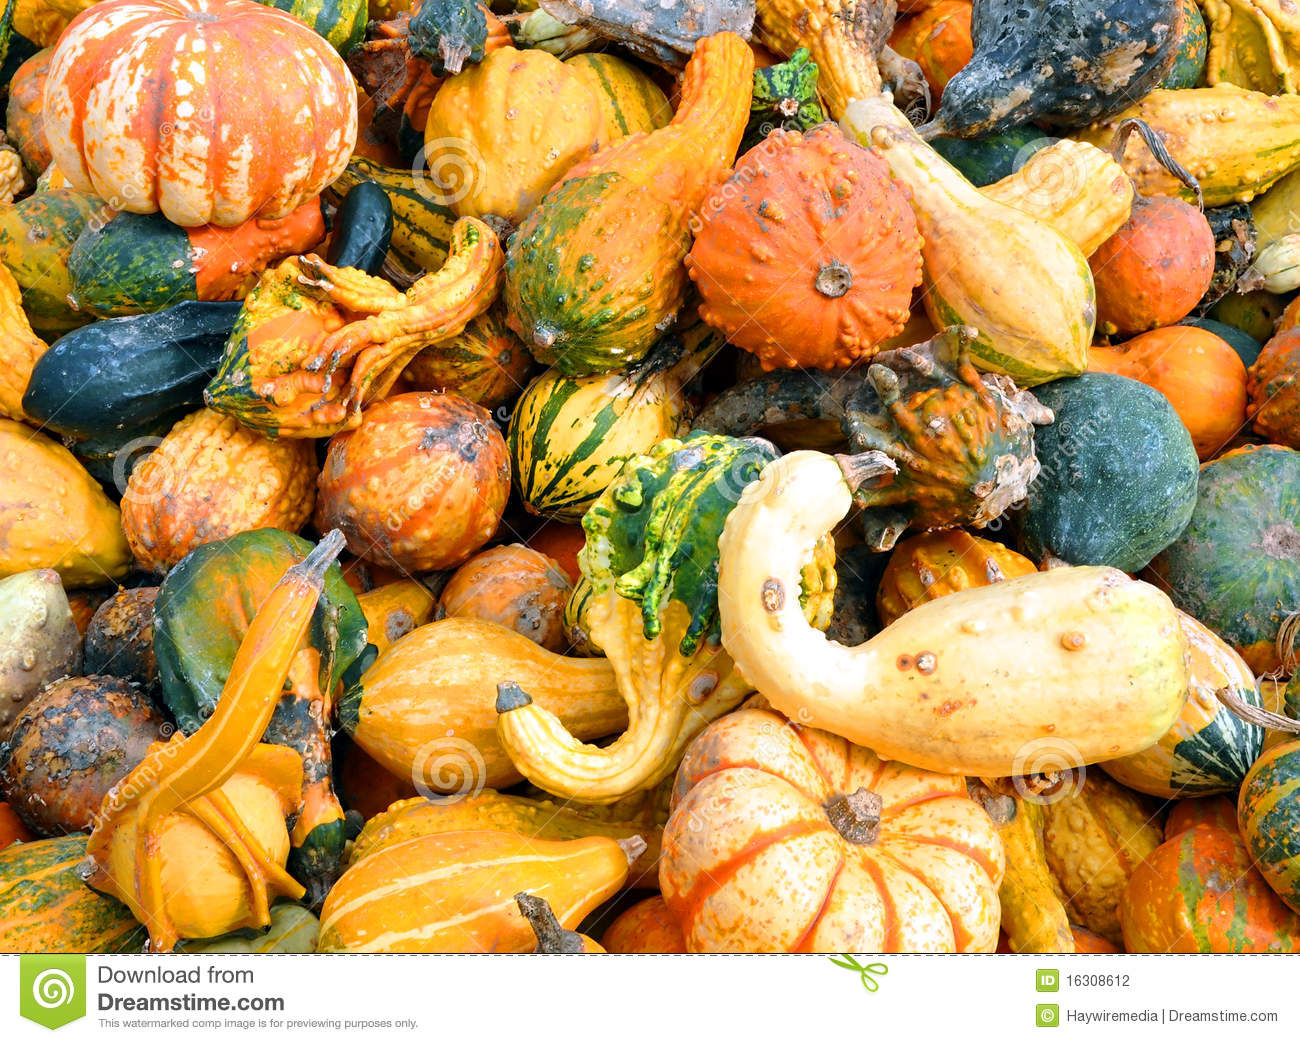 Hd Wallpaper Texture Fall Harvest Halloween Fall Pumpkin And Squash Background Stock Photo